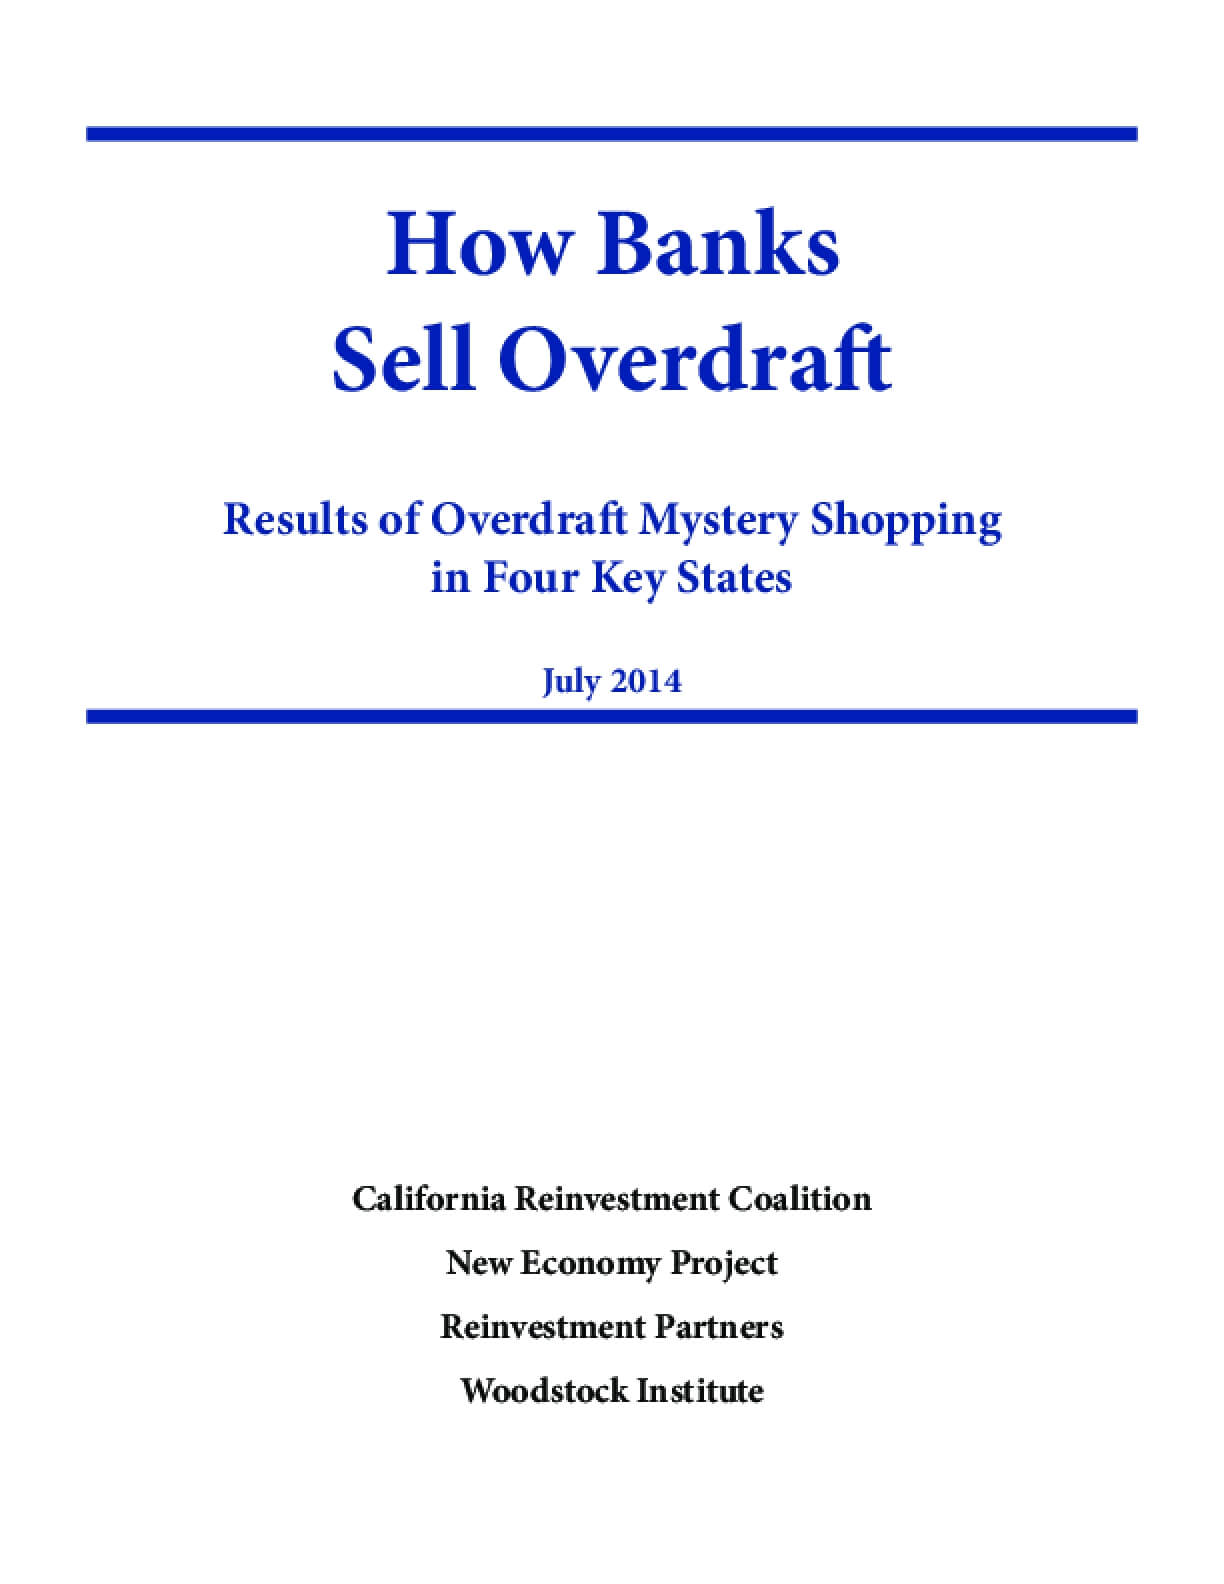 How Banks Sell Overdraft: Results of Overdraft Mystery Shopping in Four Key States